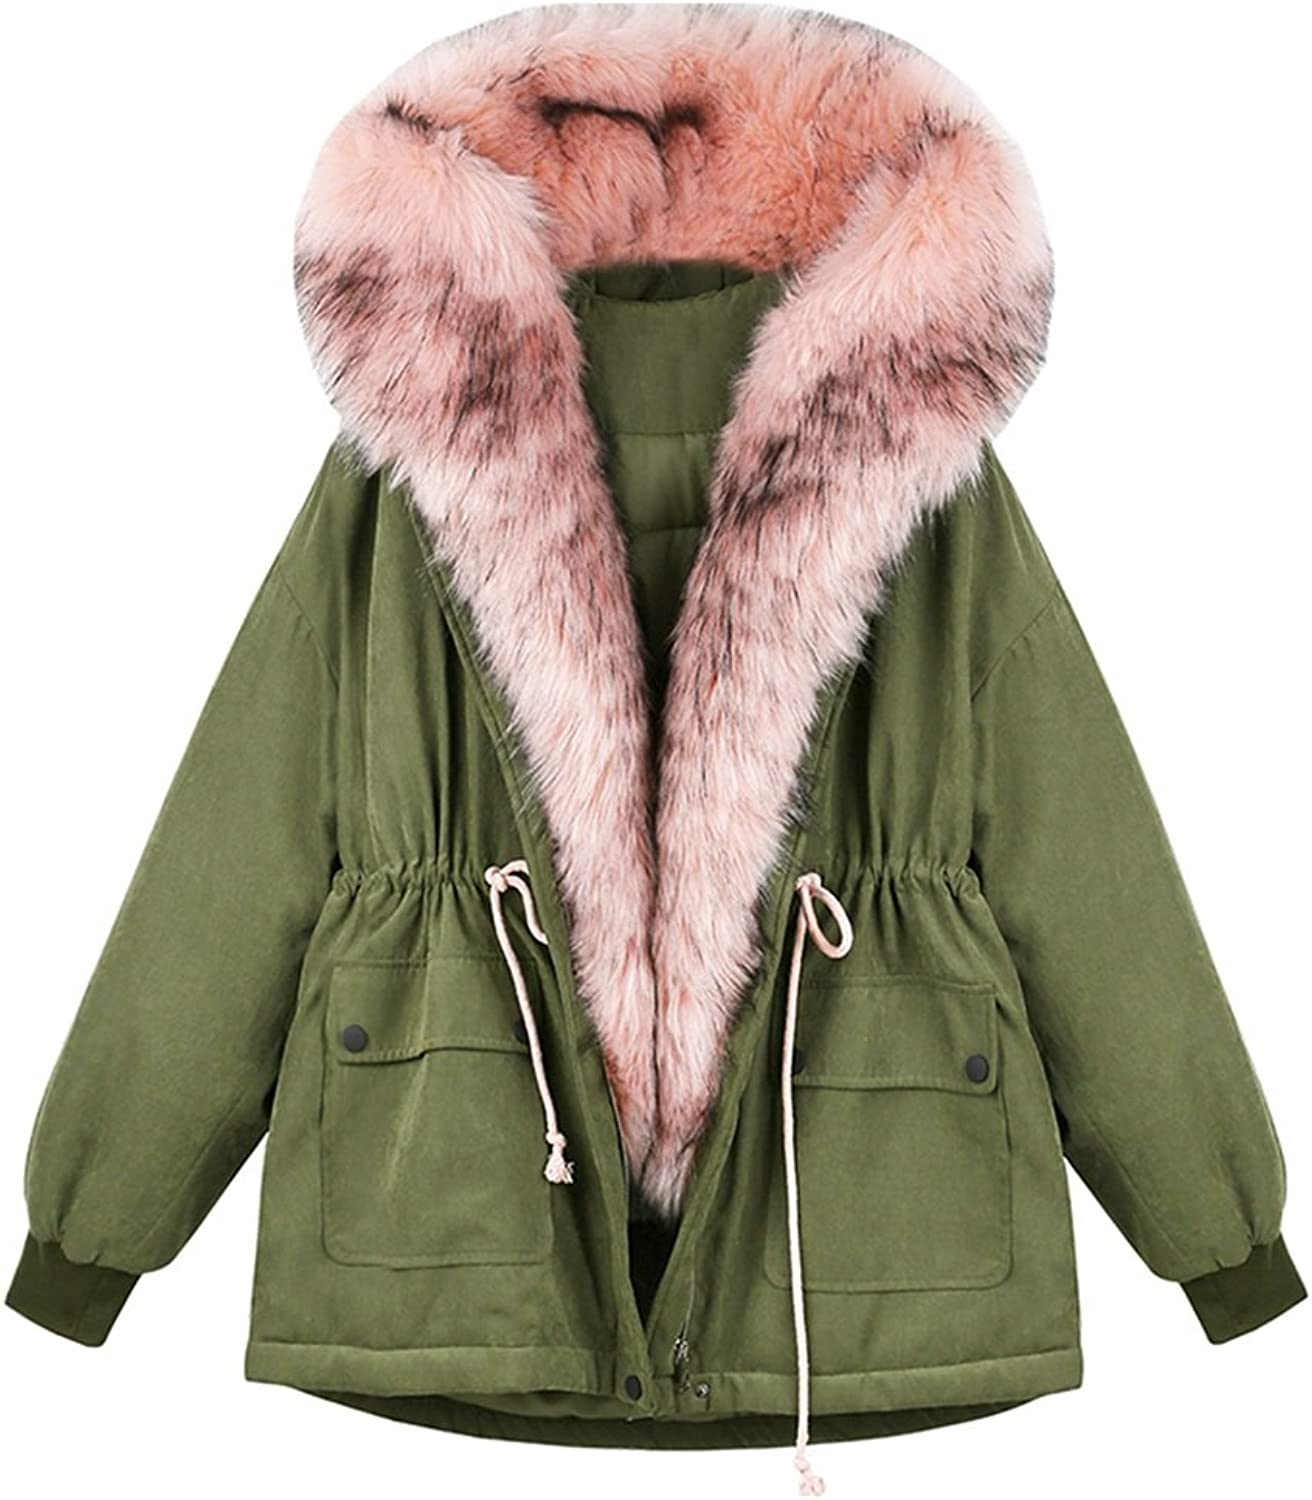 TSINYG Women's Fashion Loose Harajuku Hooded Down Jacket Boyfriend Style Winter Warm Thicken Coat ( color   Green , Size   L )